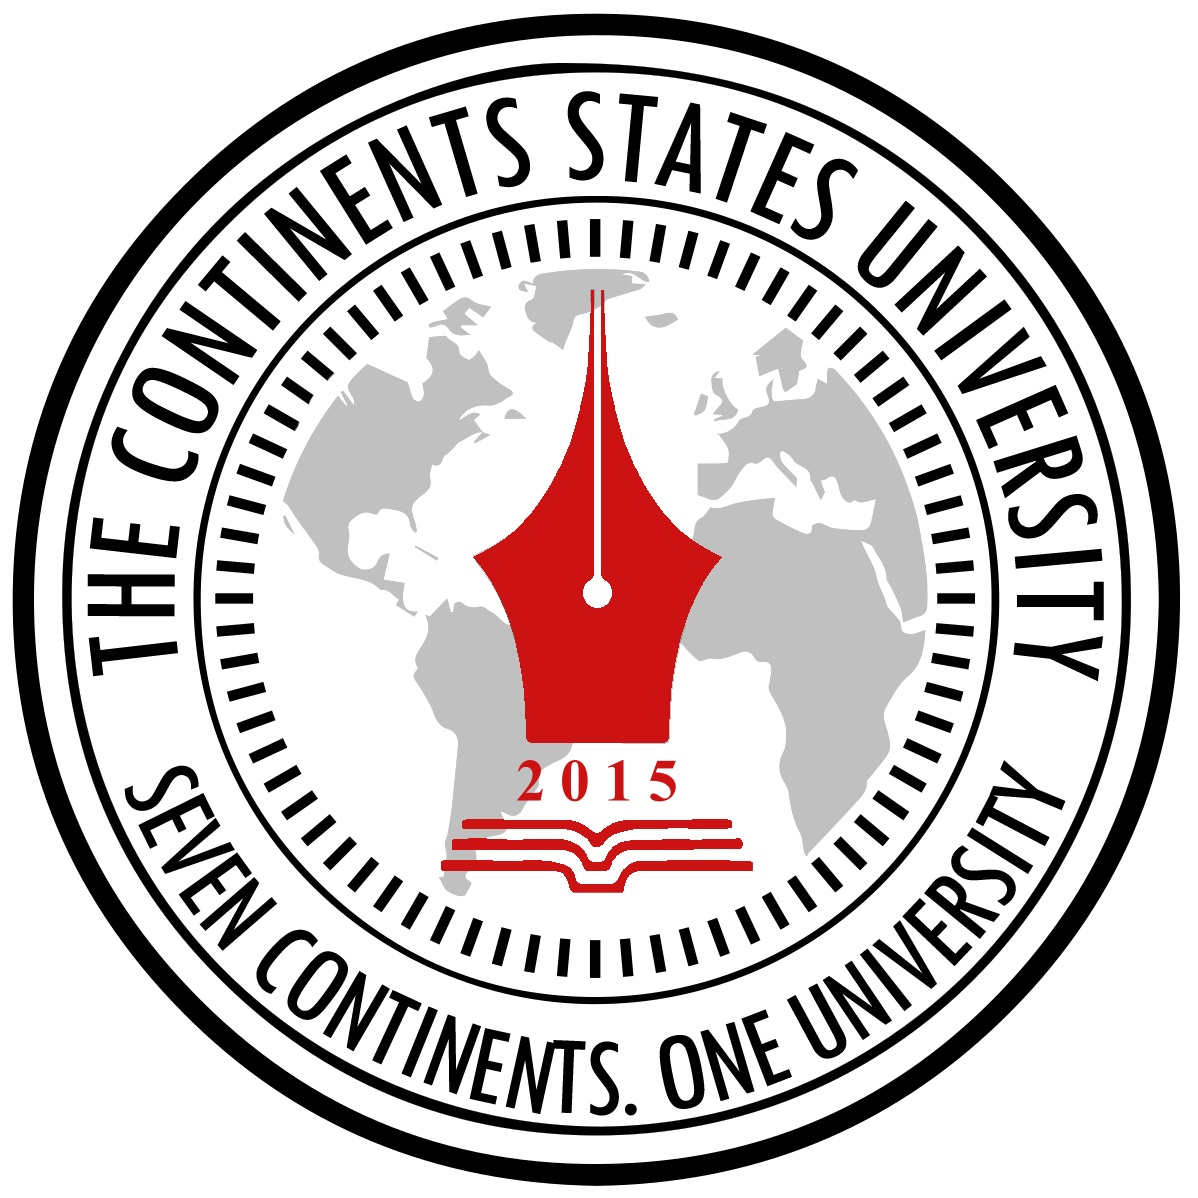 The Continents States University Receives ASIC Accreditation